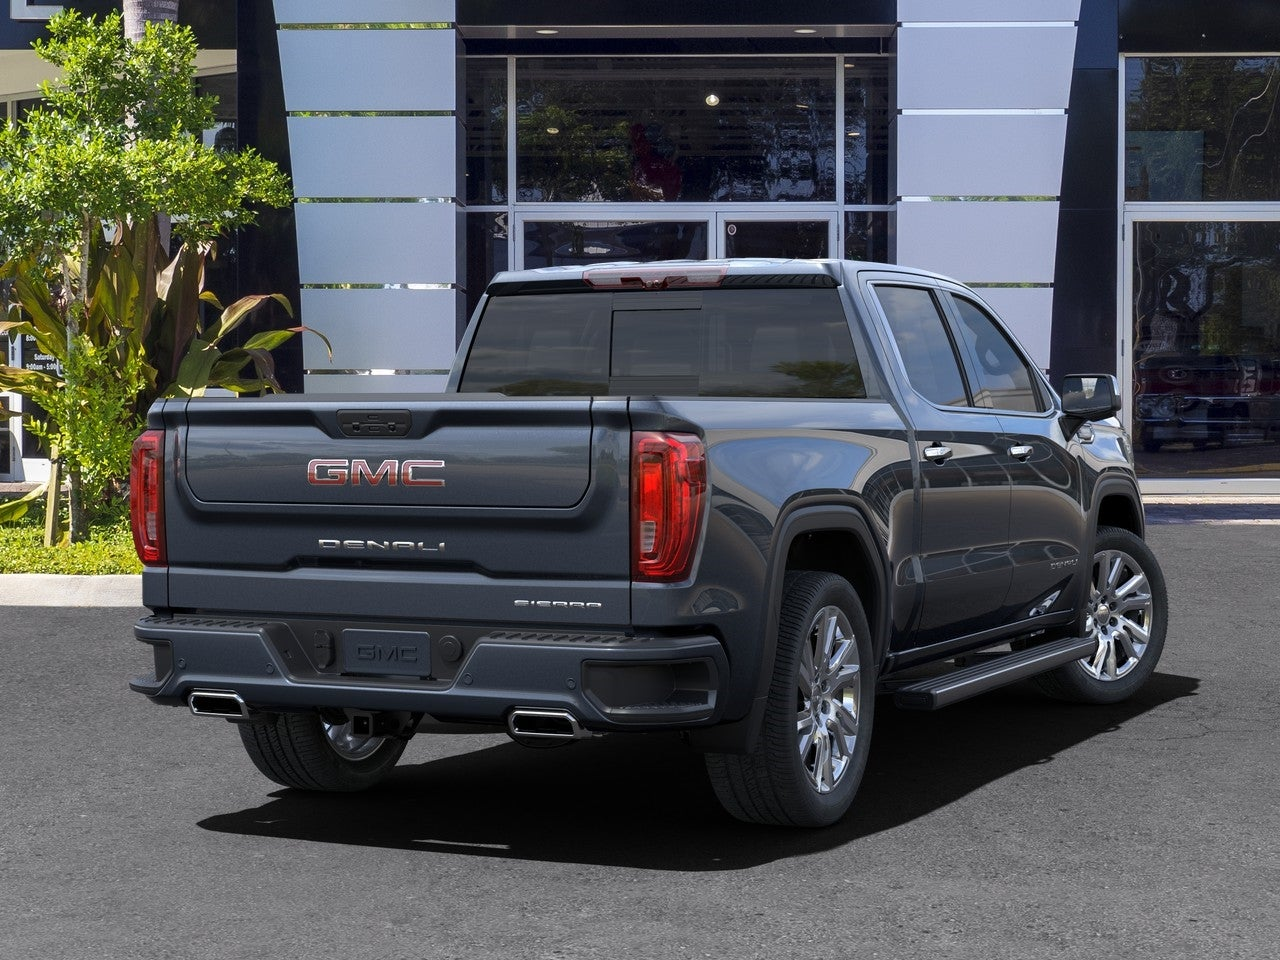 2021 GMC Sierra 1500 Crew Cab 4x2, Pickup #T21189 - photo 24